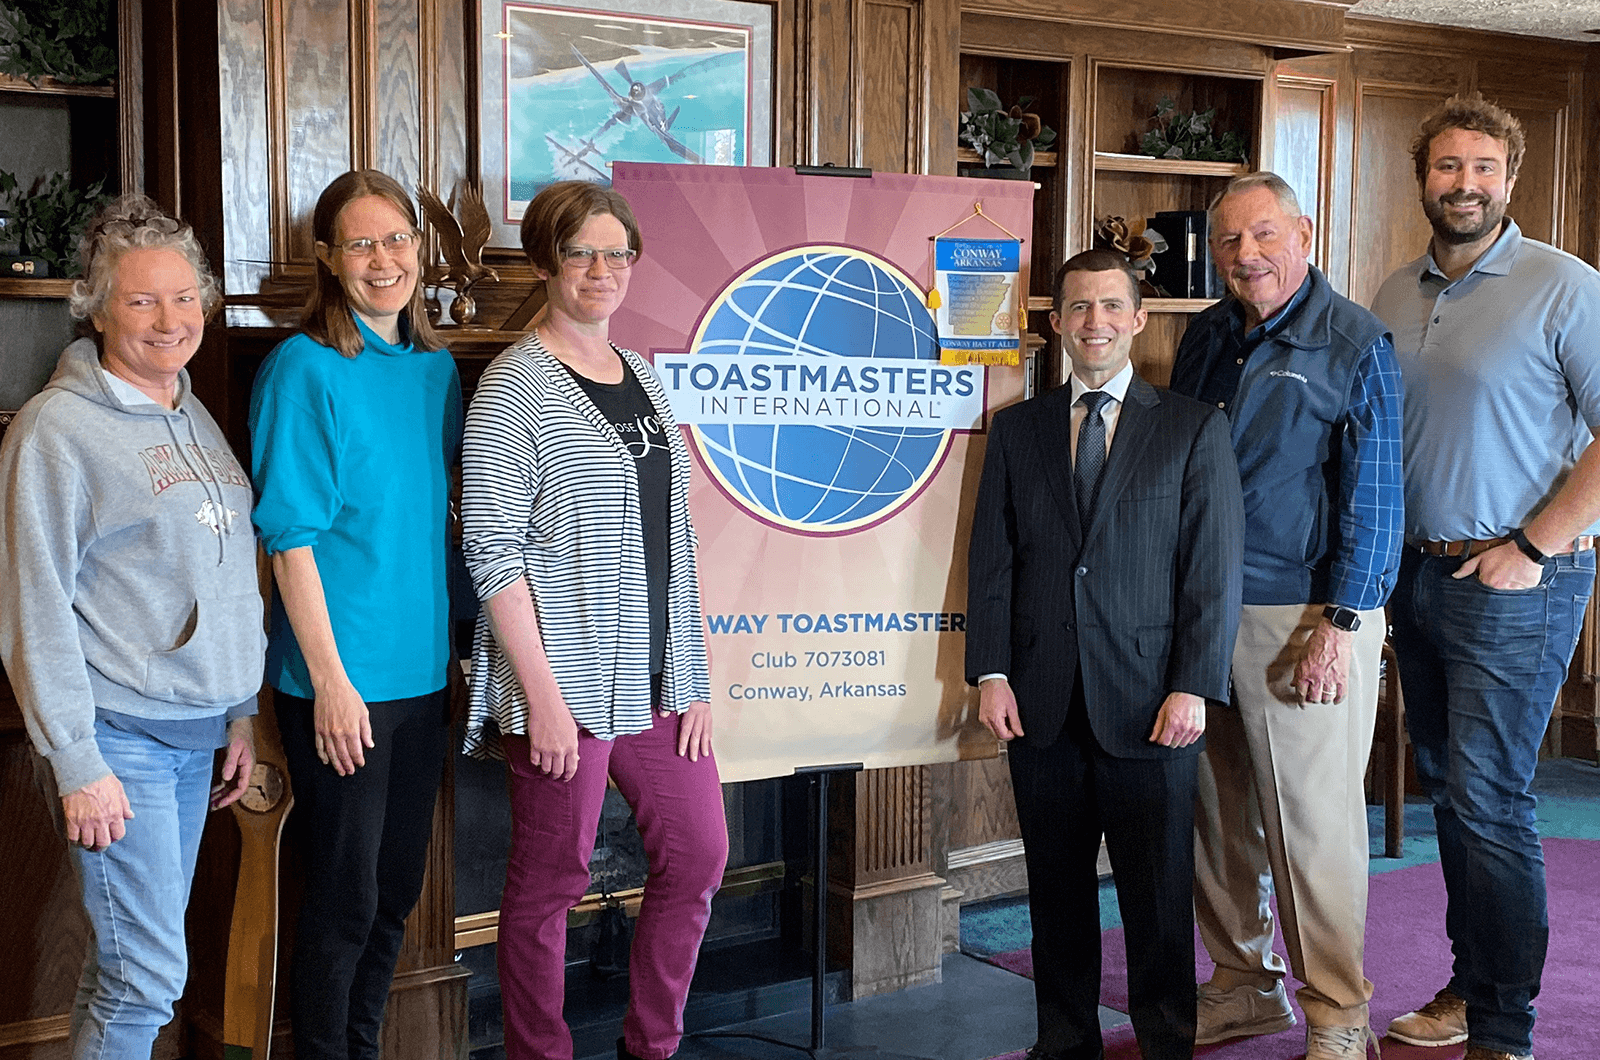 Toastmasters members pose with club banner